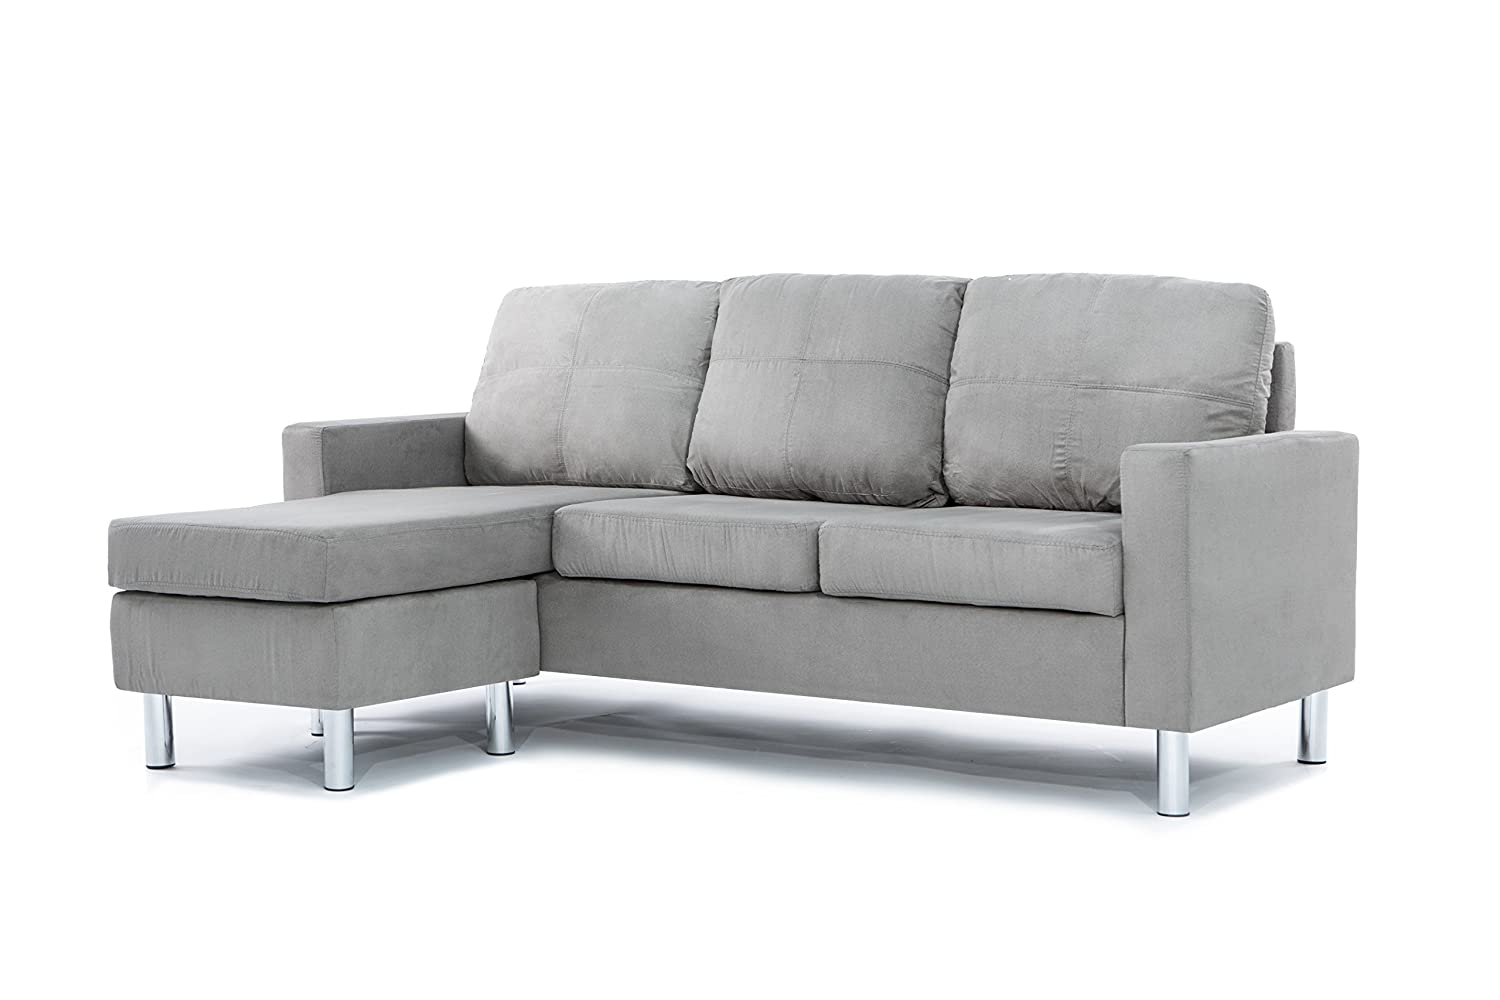 Superieur Amazon.com: Divano Roma Furniture Modern Soft Brush Microfiber Sectional  Sofa   Small Space Configurable Couch (Grey): Kitchen U0026 Dining